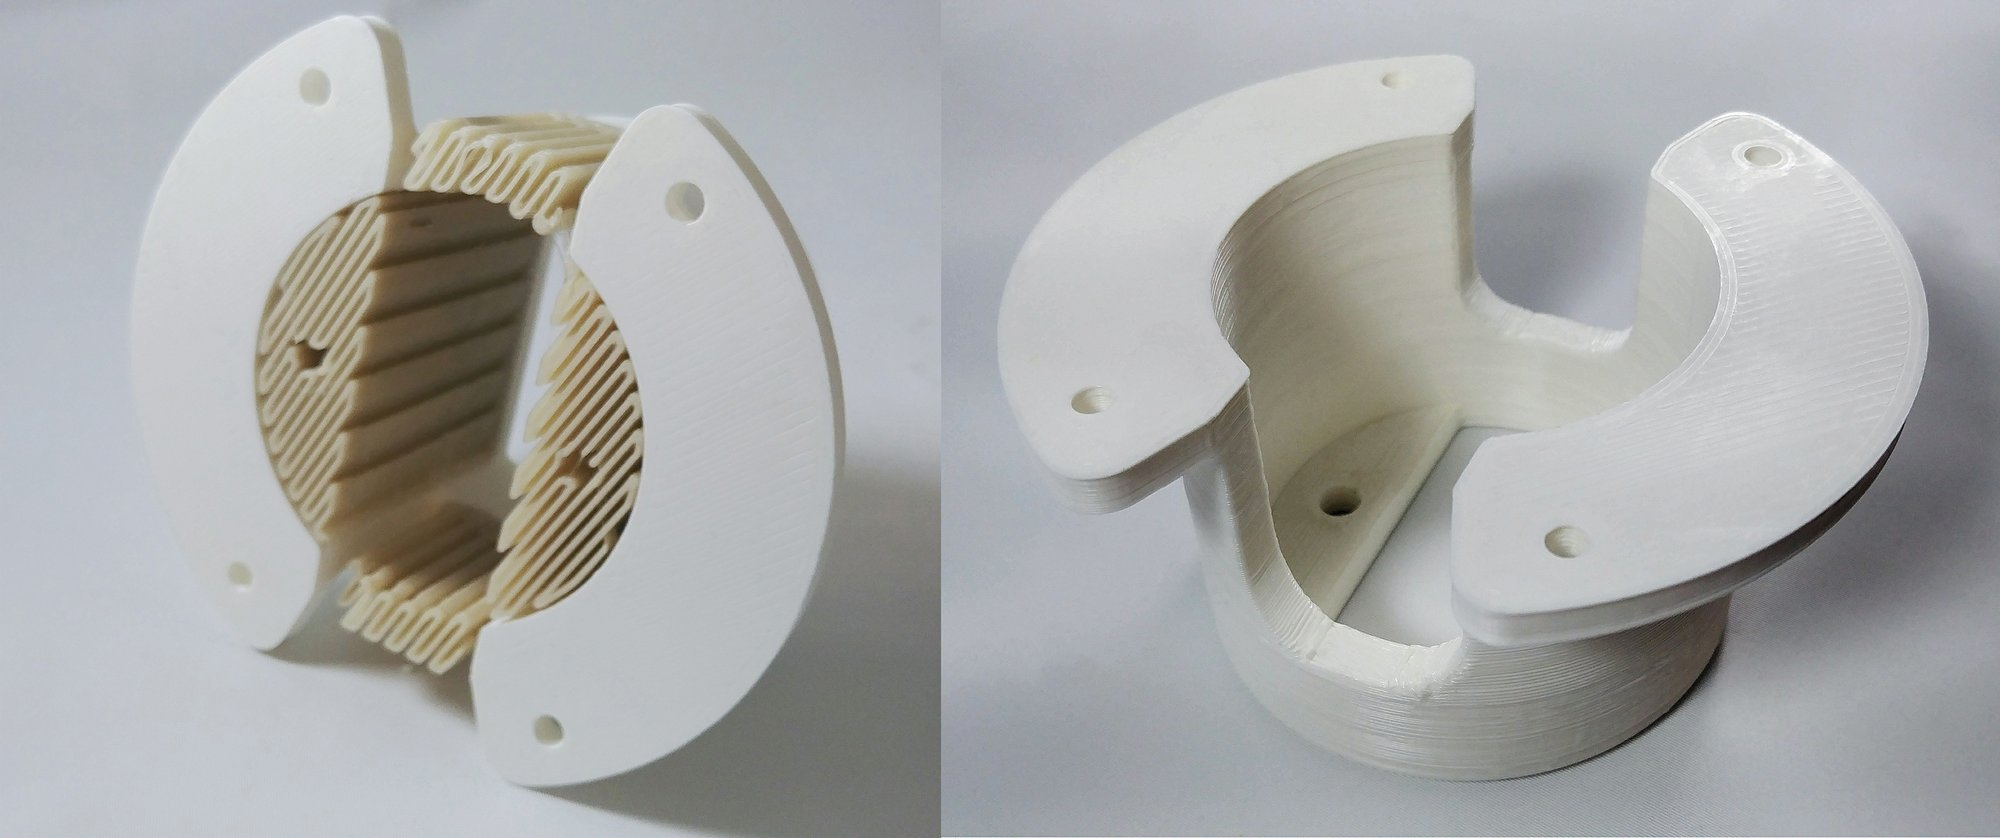 Ingeo 3D450 3D printed parts. Photo via NatureWorks.